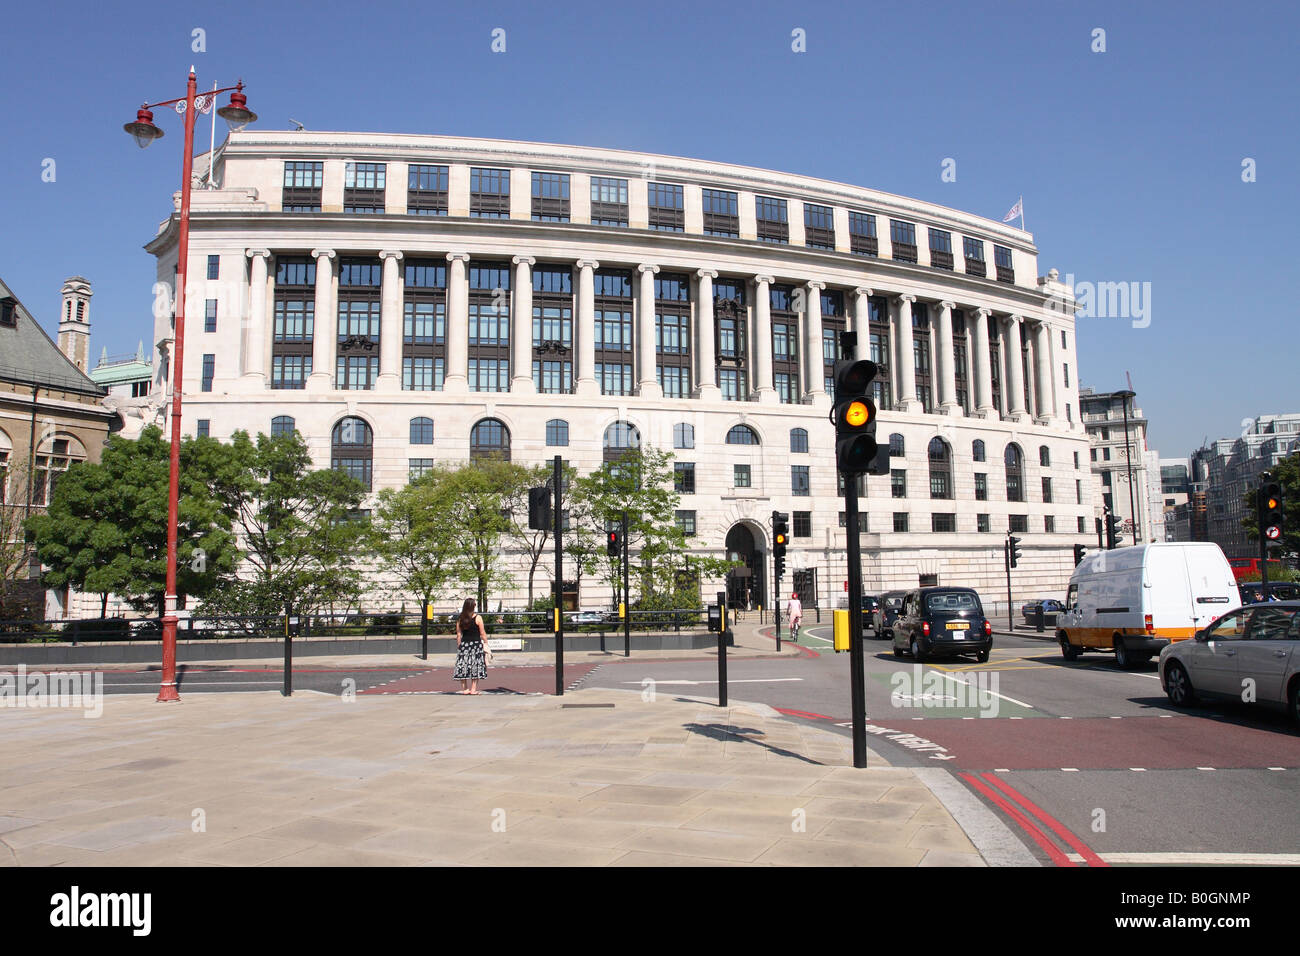 London England Unilever House at 100 Victoria Embankment built in 1931 but recently renovated in 2007 - Stock Image